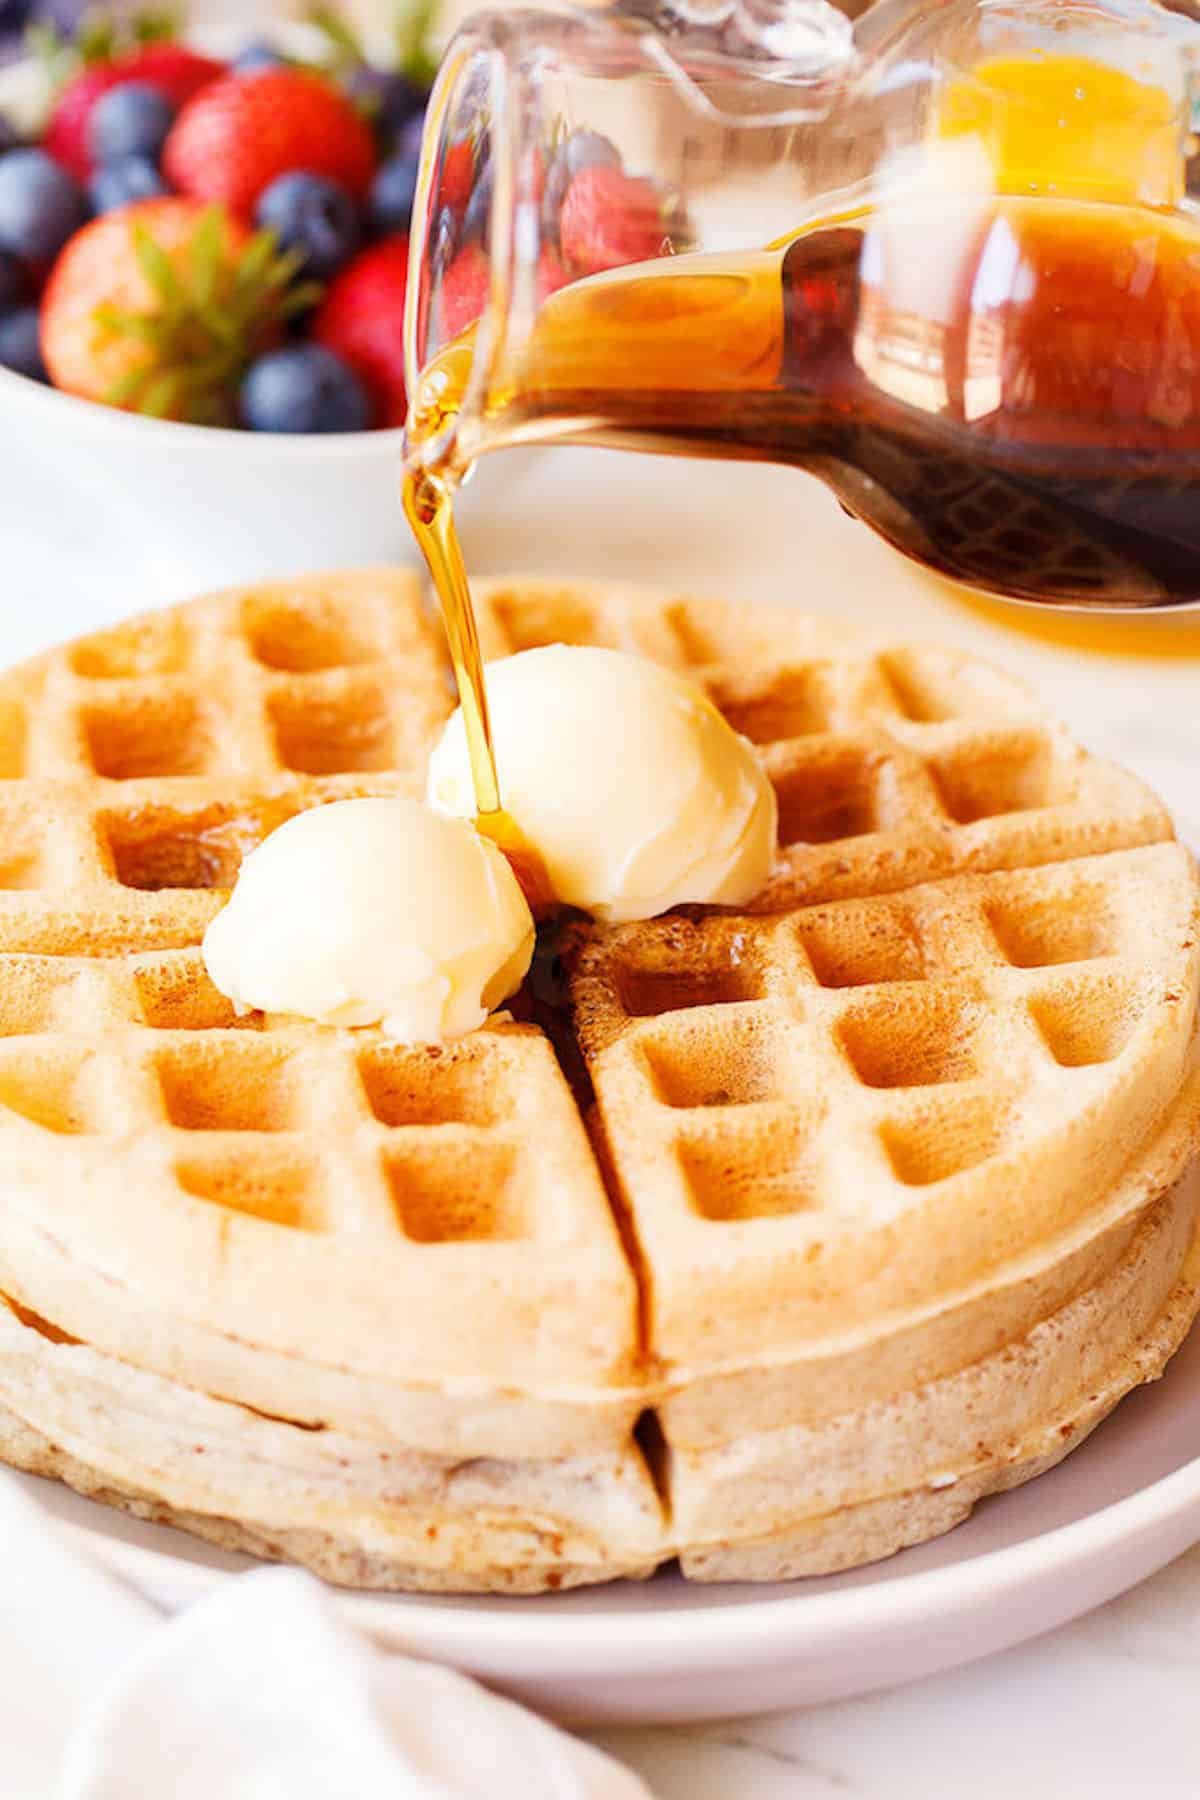 waffles served with butter and syrup